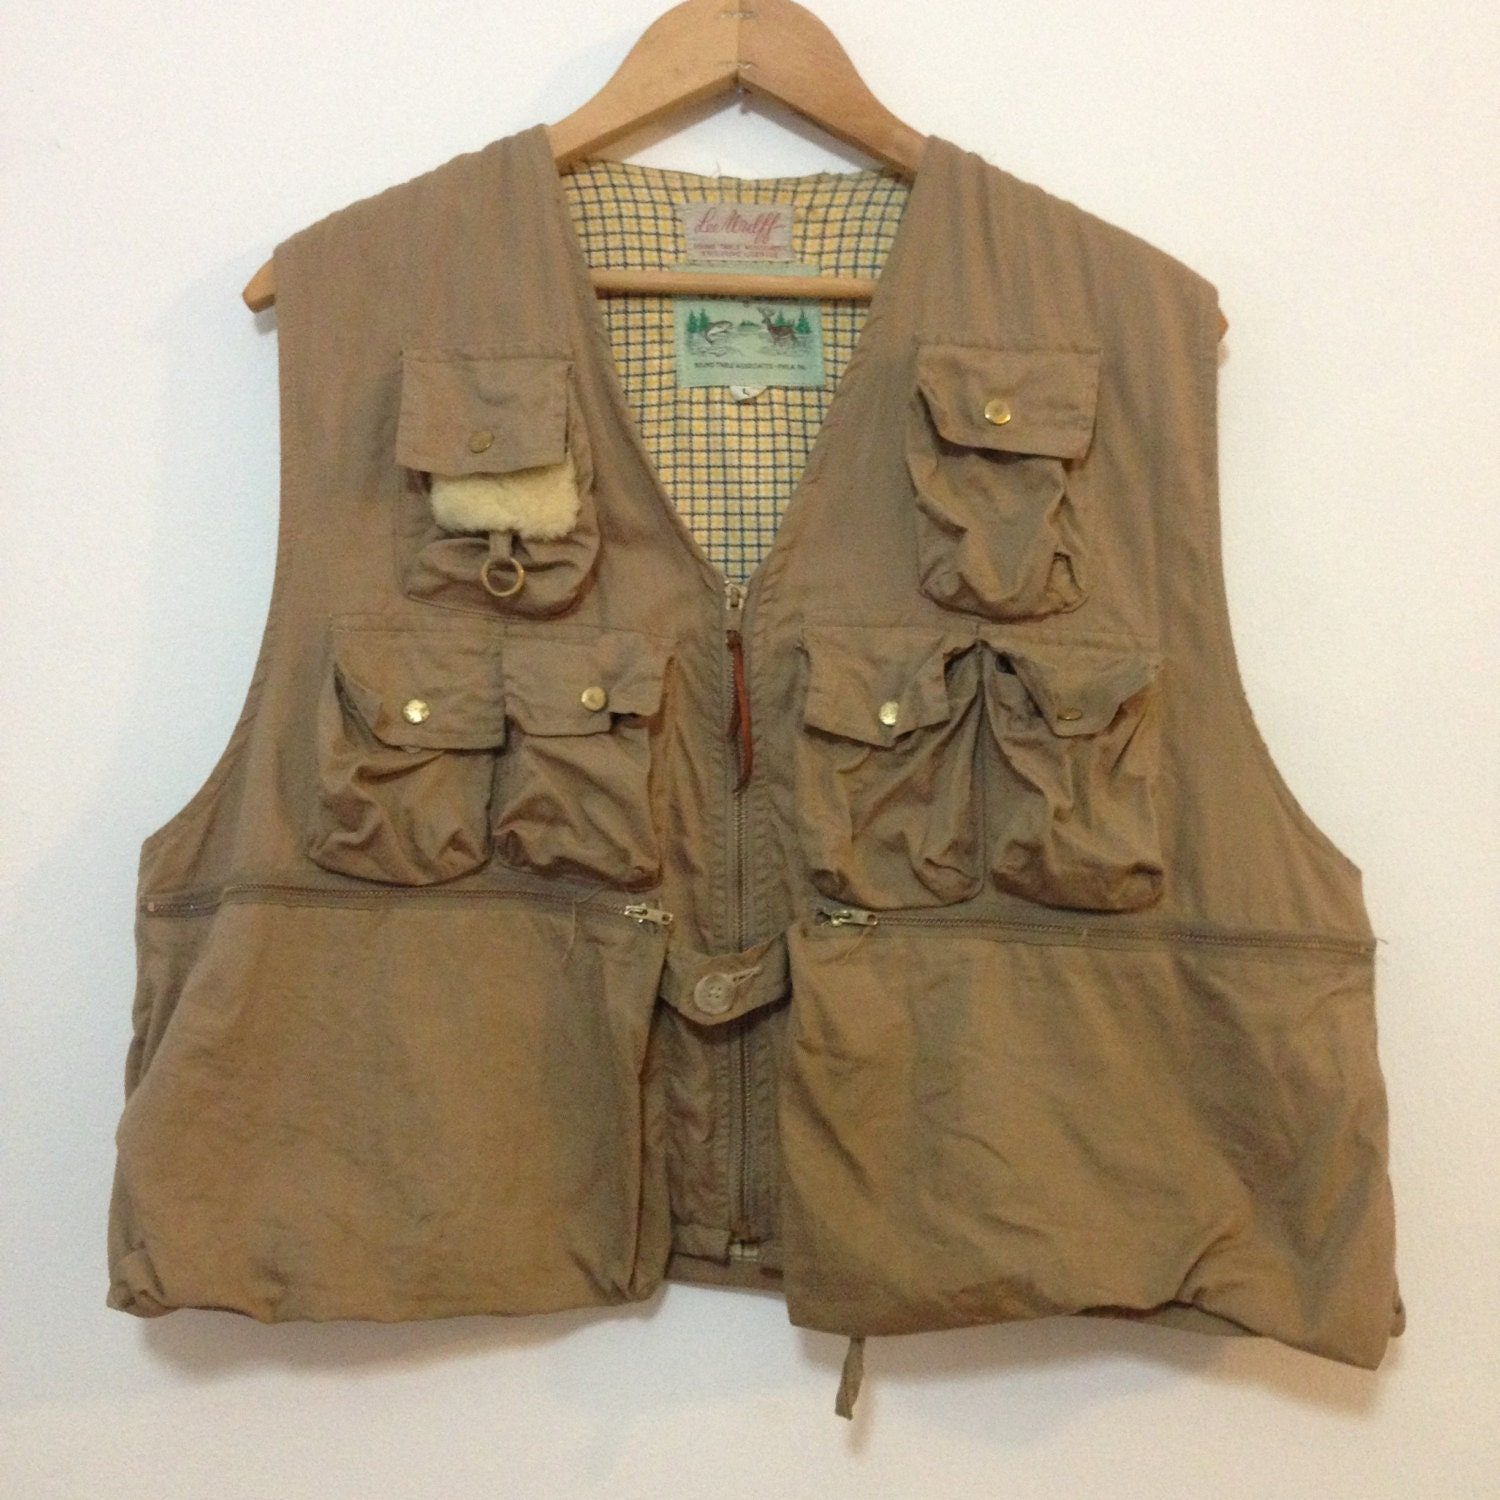 Vintage lee wulff fly fishing vest tuff gear tan twill pockets for Fly fishing vest